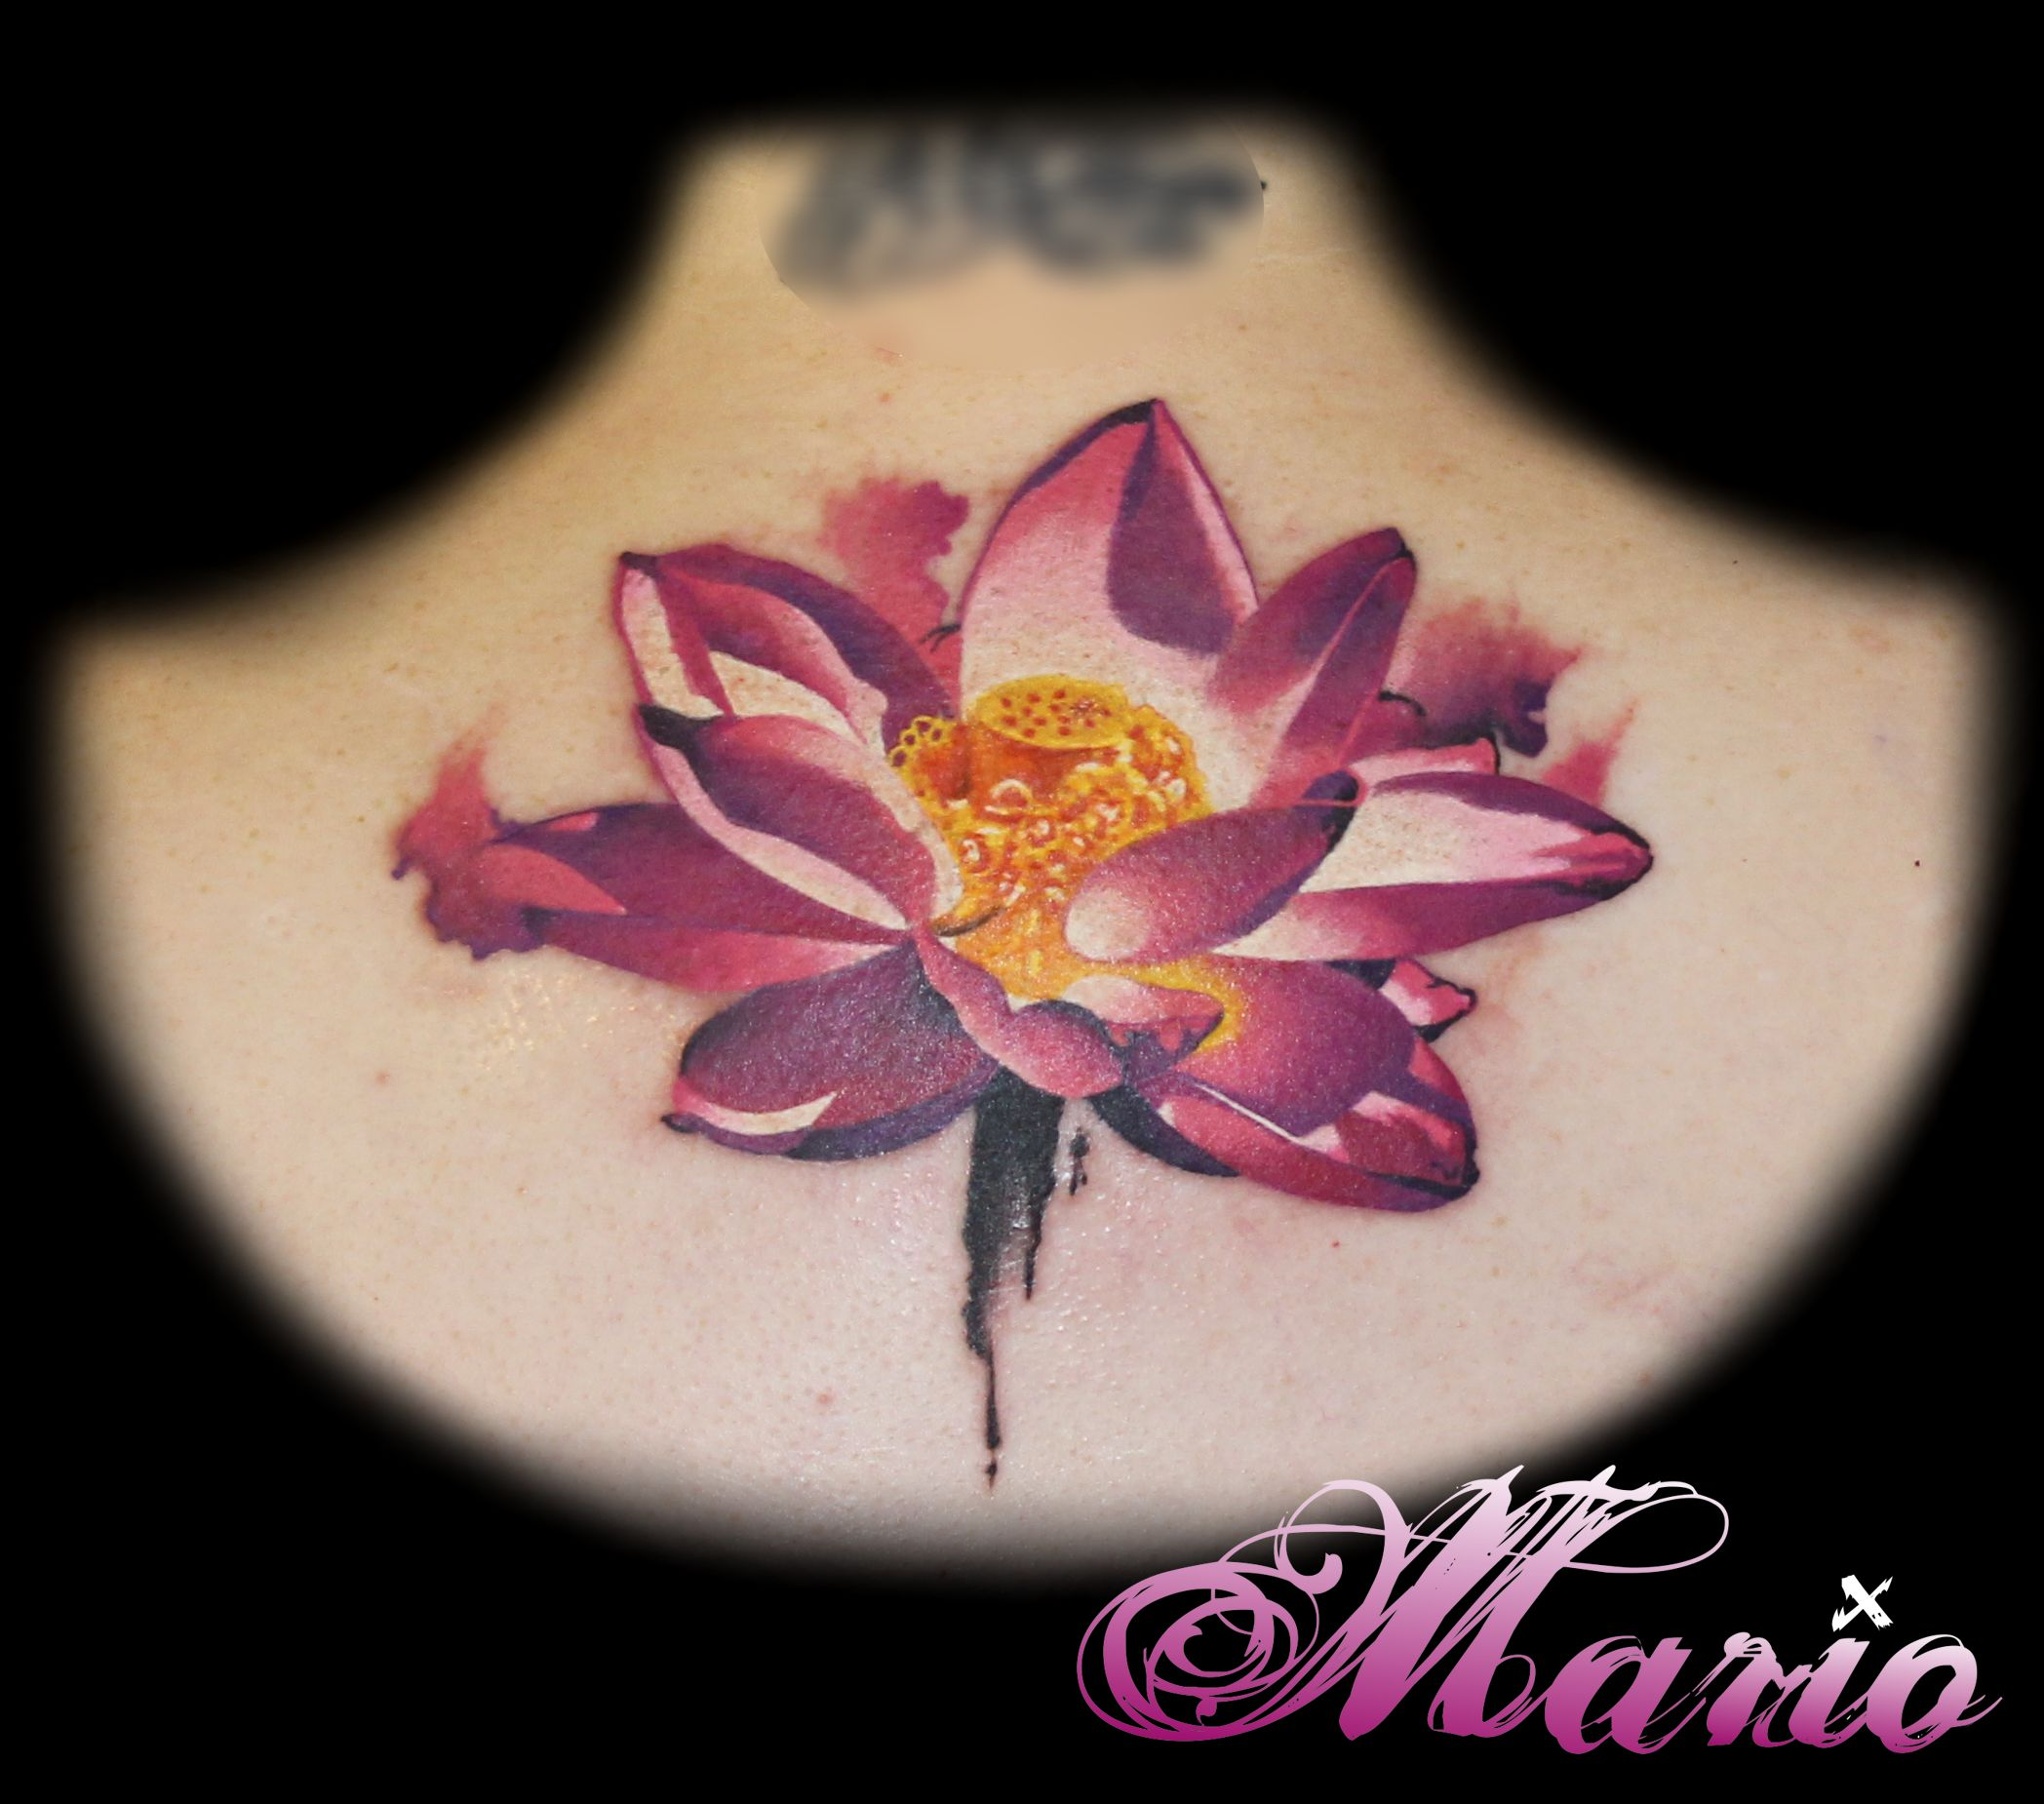 Browse worlds largest tattoo image gallery trueartists lotus flower tattoo color back izmirmasajfo